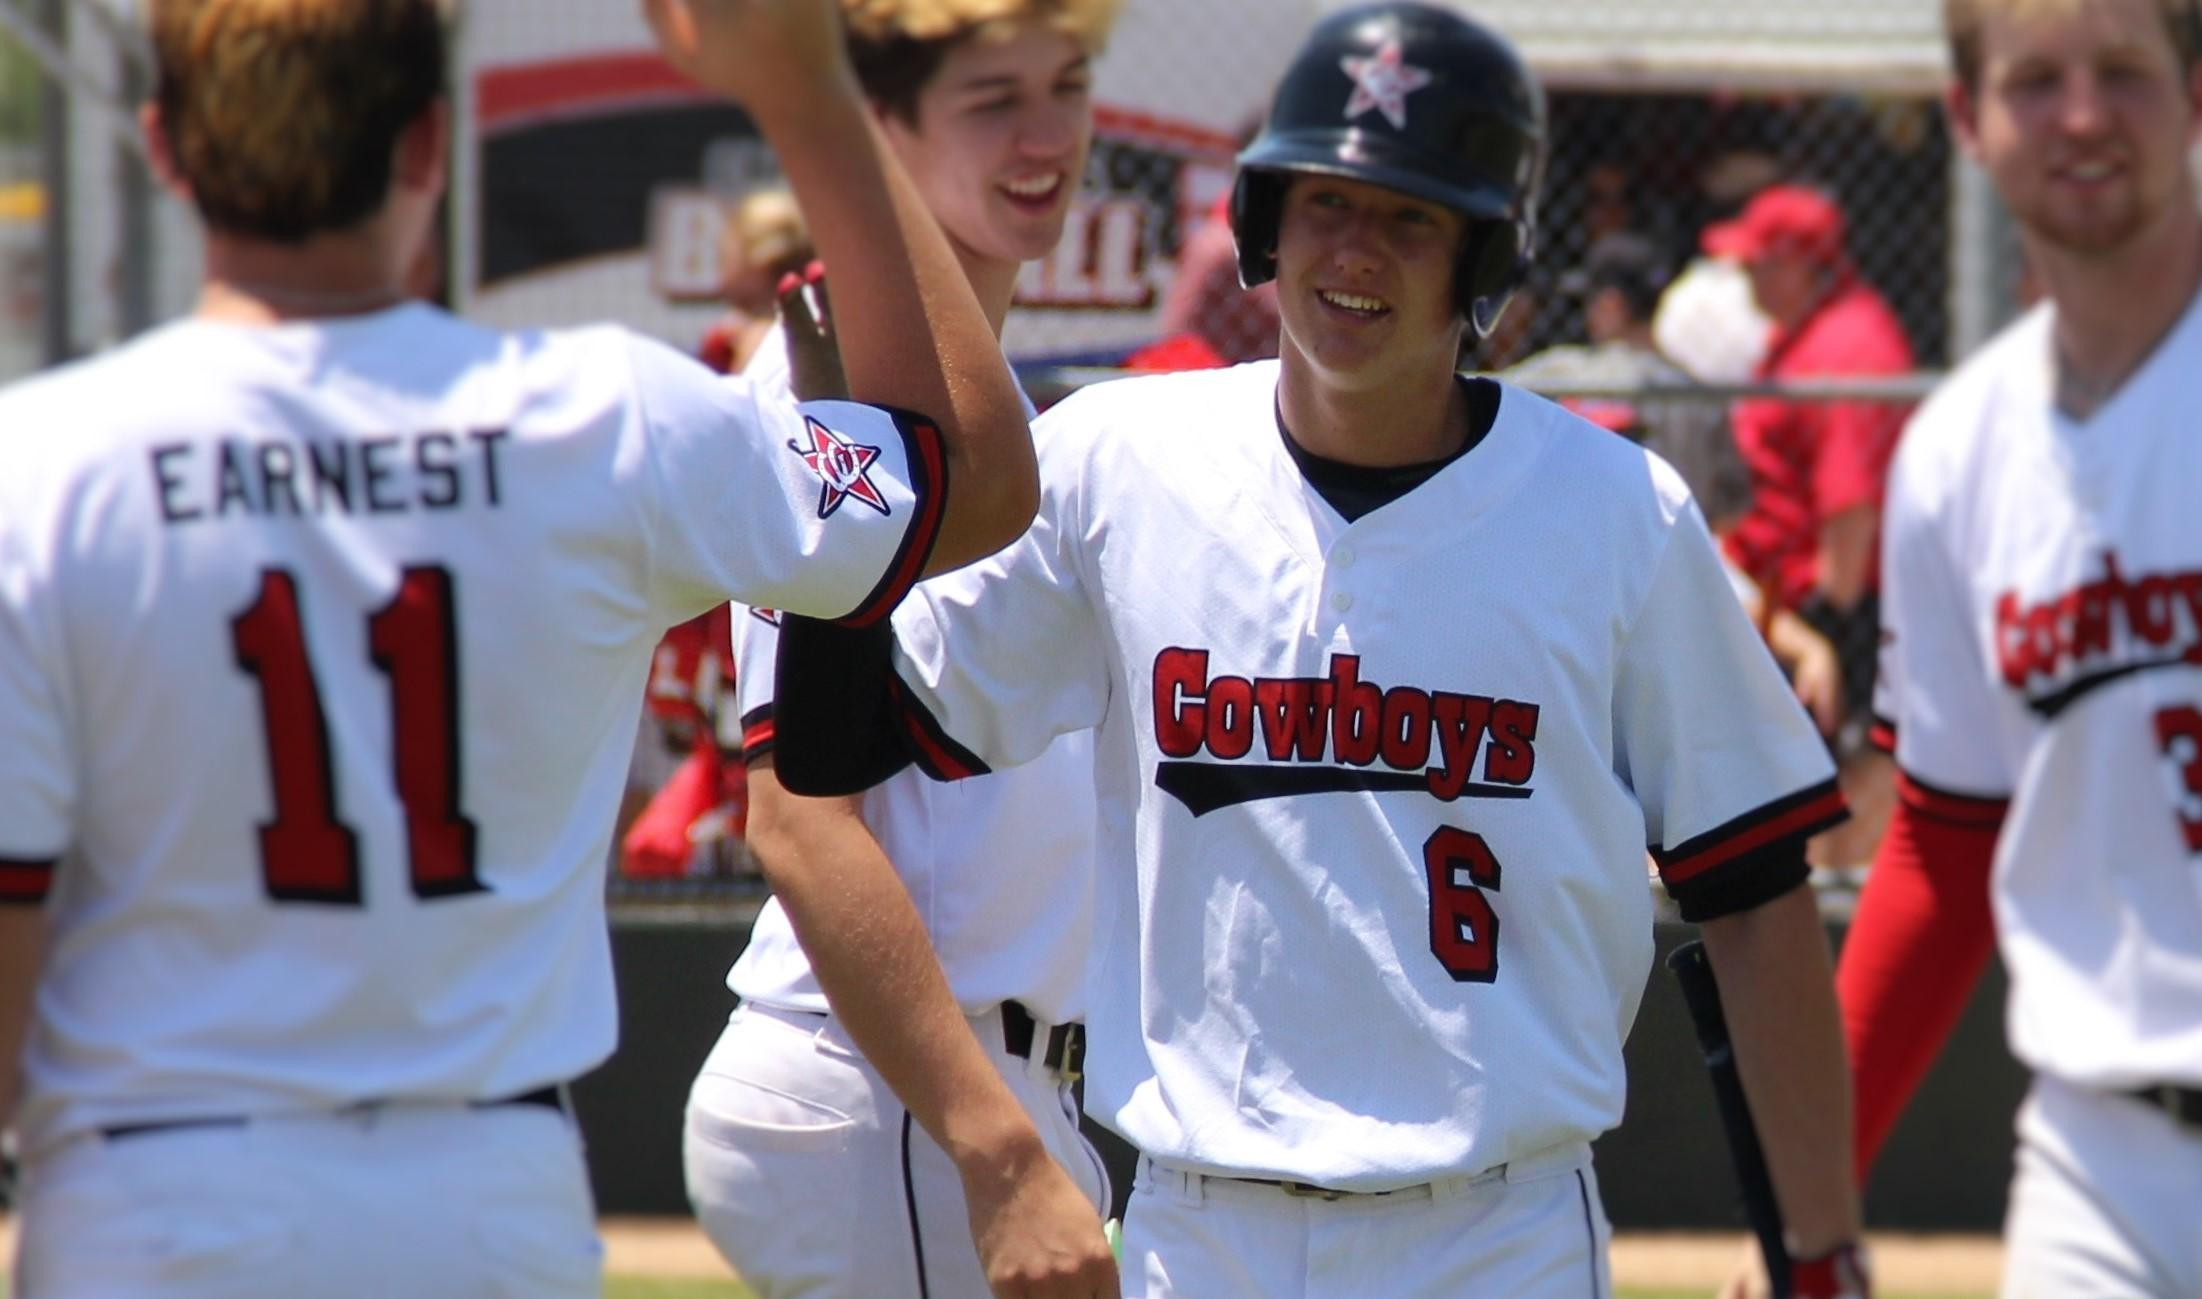 The Coppell High School varsity baseball team celebrates its win  against Duncanville High School on Saturday at the Coppell ISD  Baseball/Softball complex. The Cowboys will be taking on McKinney Boyd  High School Thursday, Friday and Saturday (if necessary) in the area  round of the playoffs.